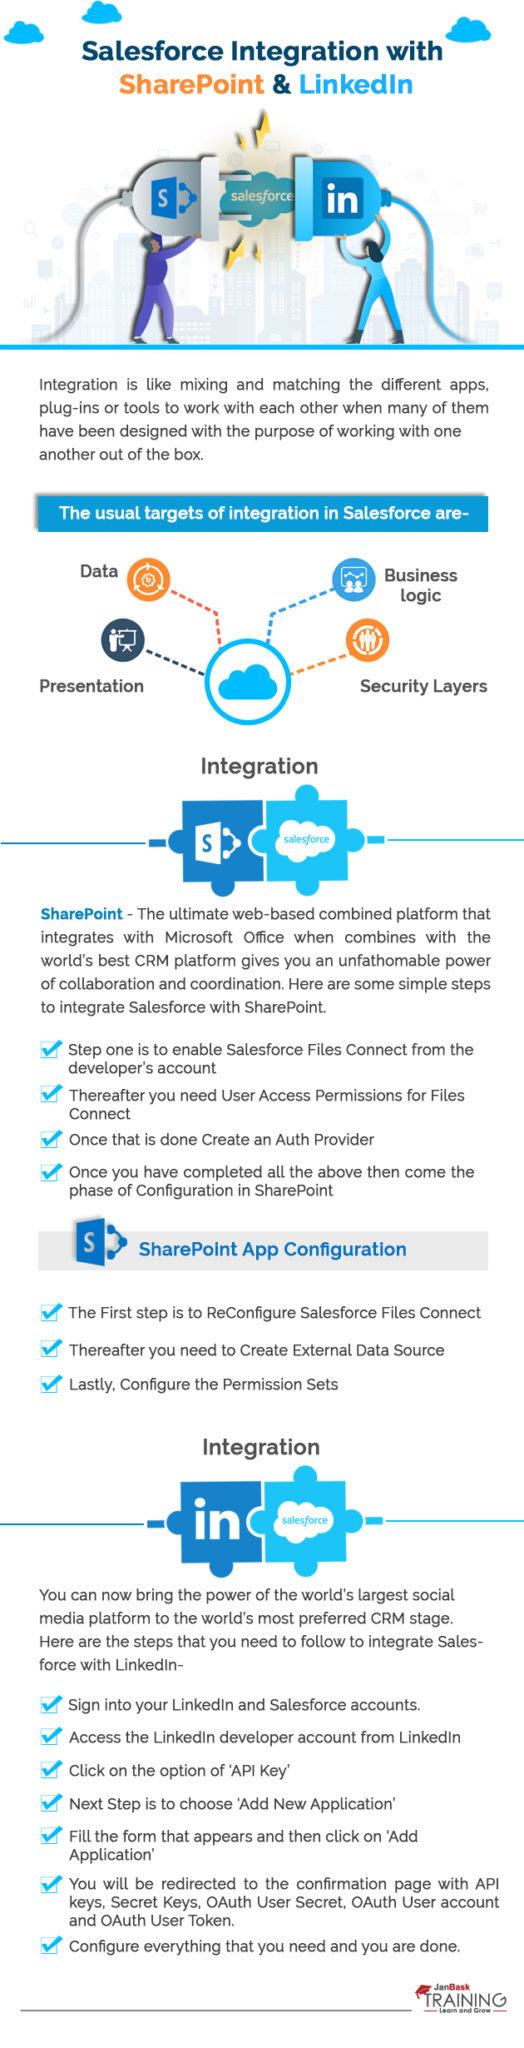 Infographic - Salesforce Integration with SharePoint and LinkedIn